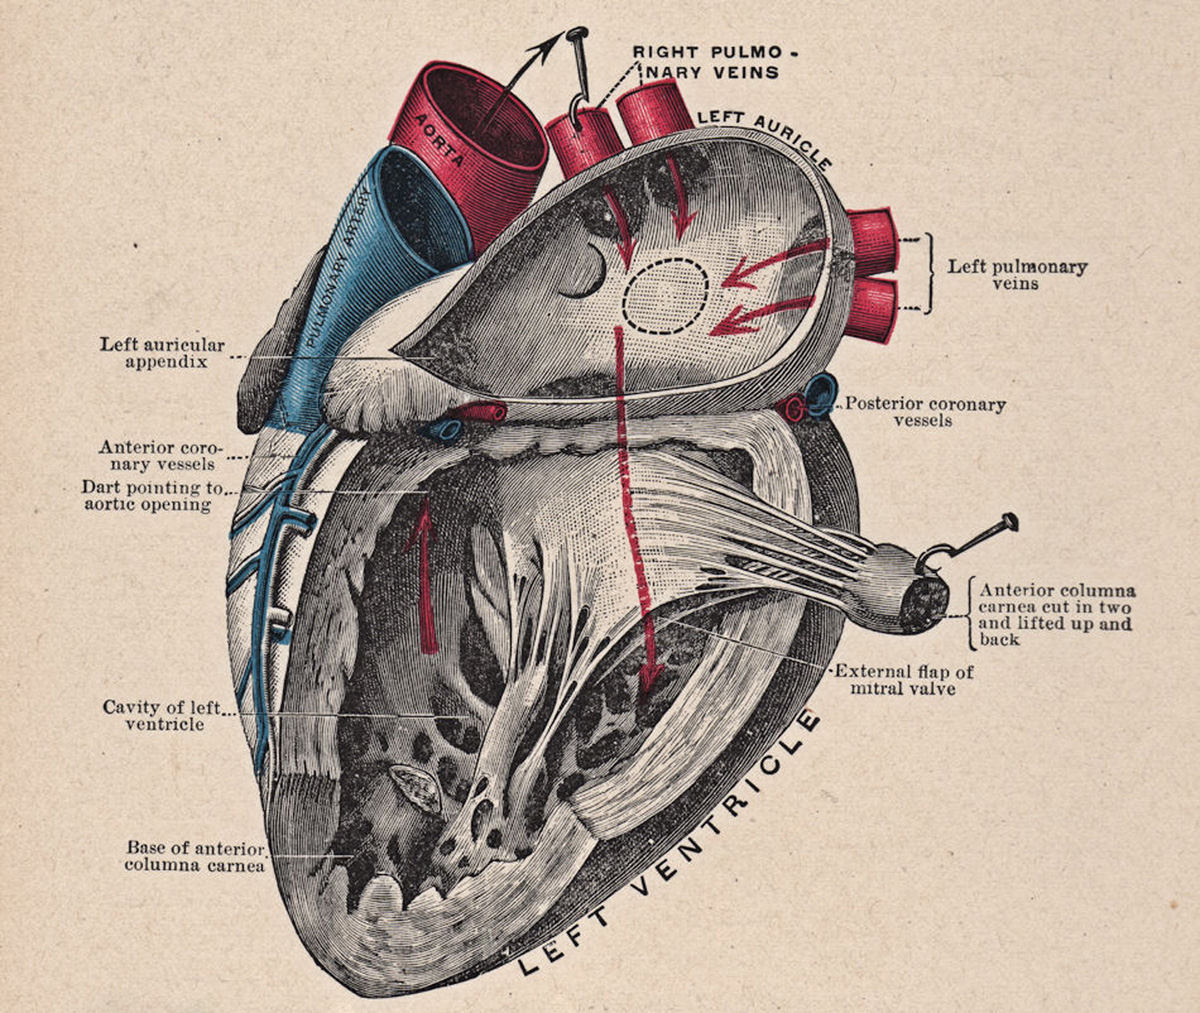 anatomical heart diagram john deere 425 pto wiring 5 pictures the graphics fairy anatomy